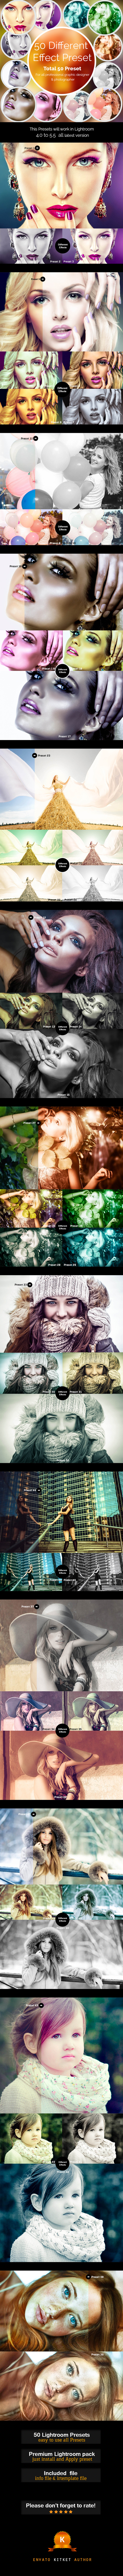 50 Different Effect Preset - Portrait Lightroom Presets